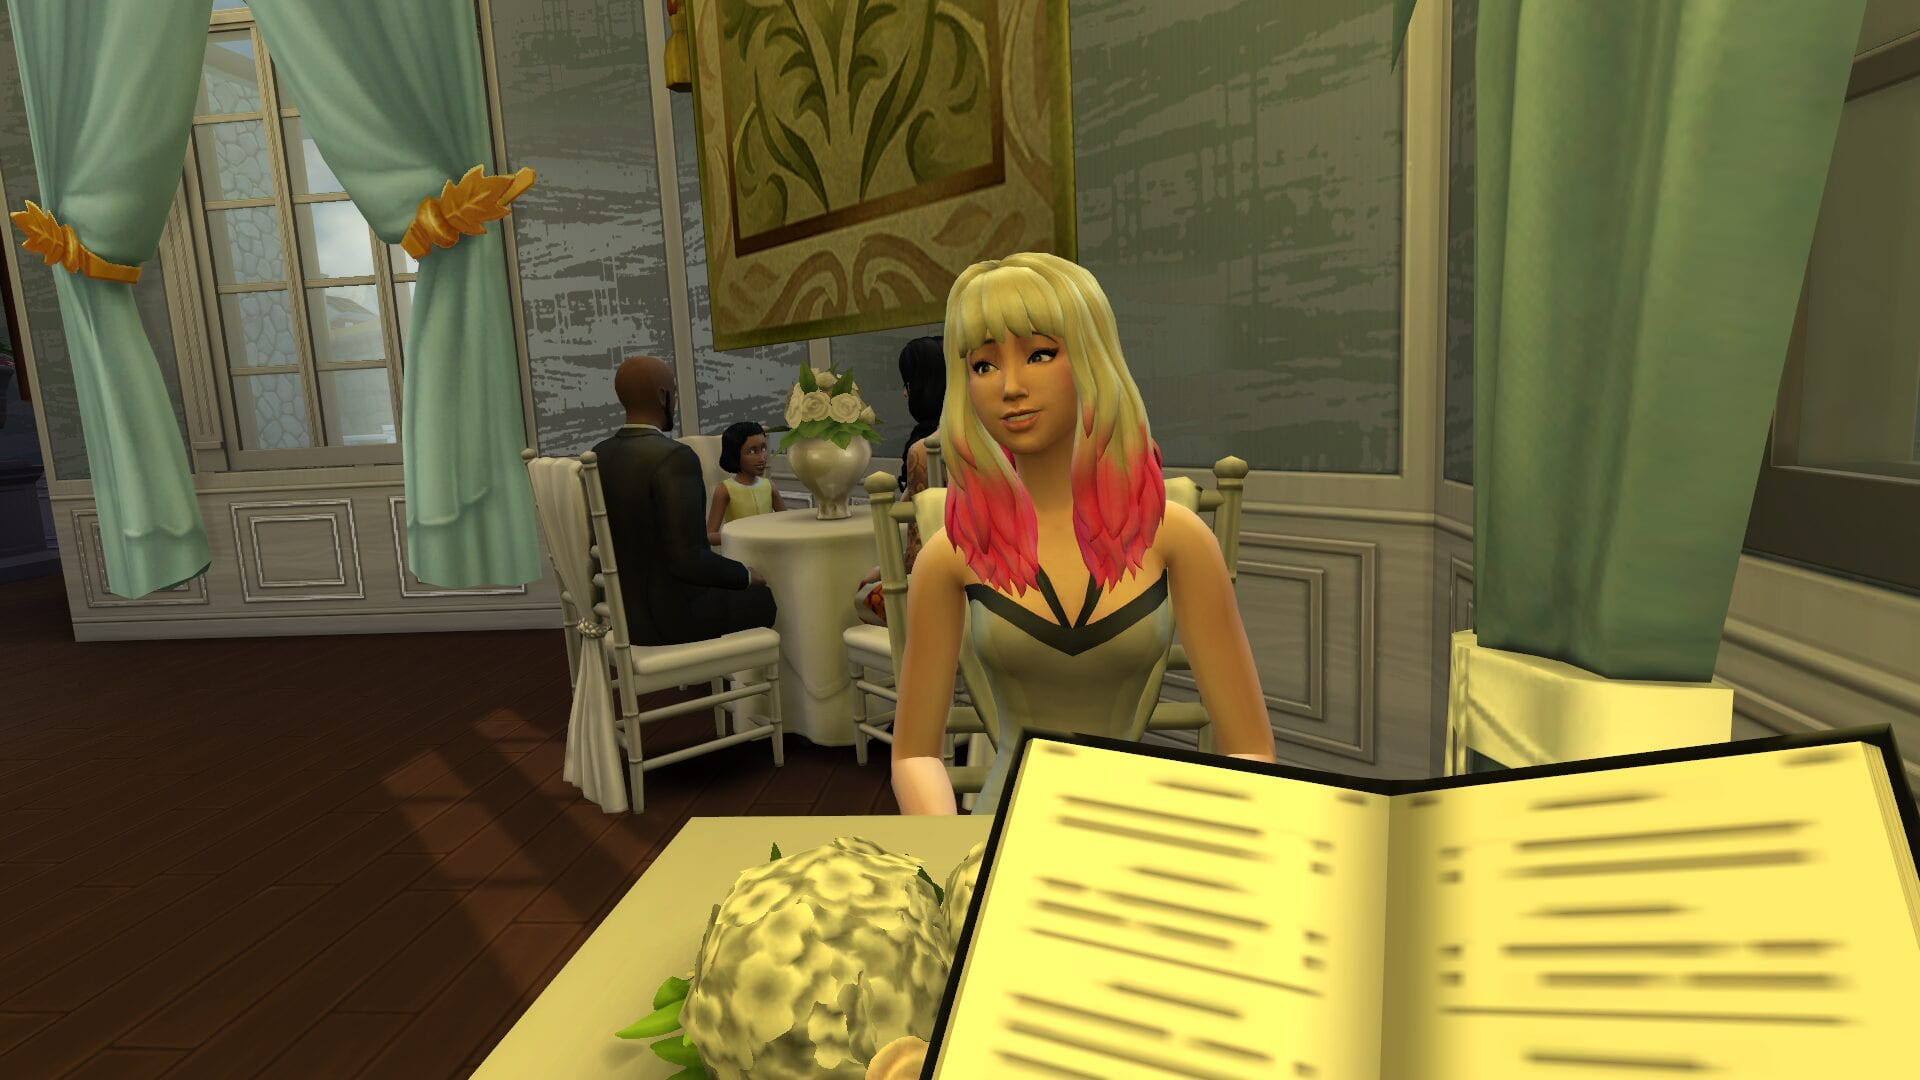 Sims 4 in First Person